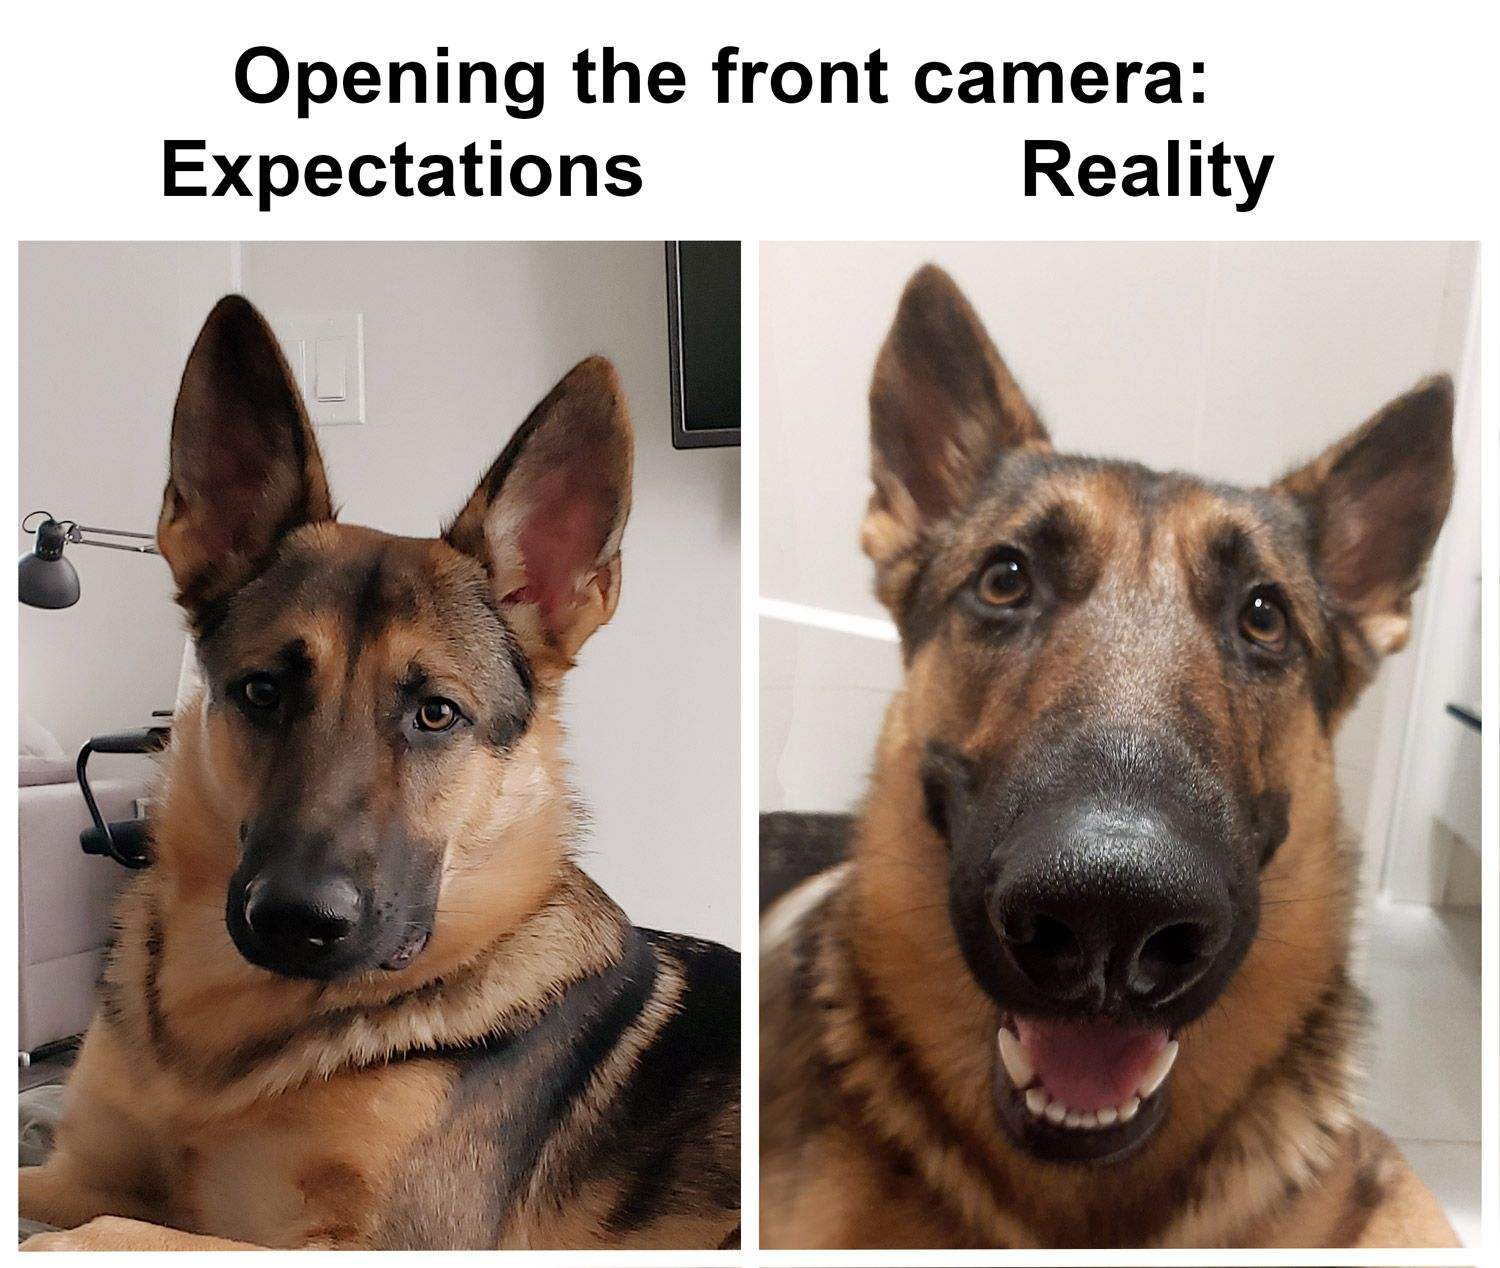 Opening the front camera: Expectations vs Reality